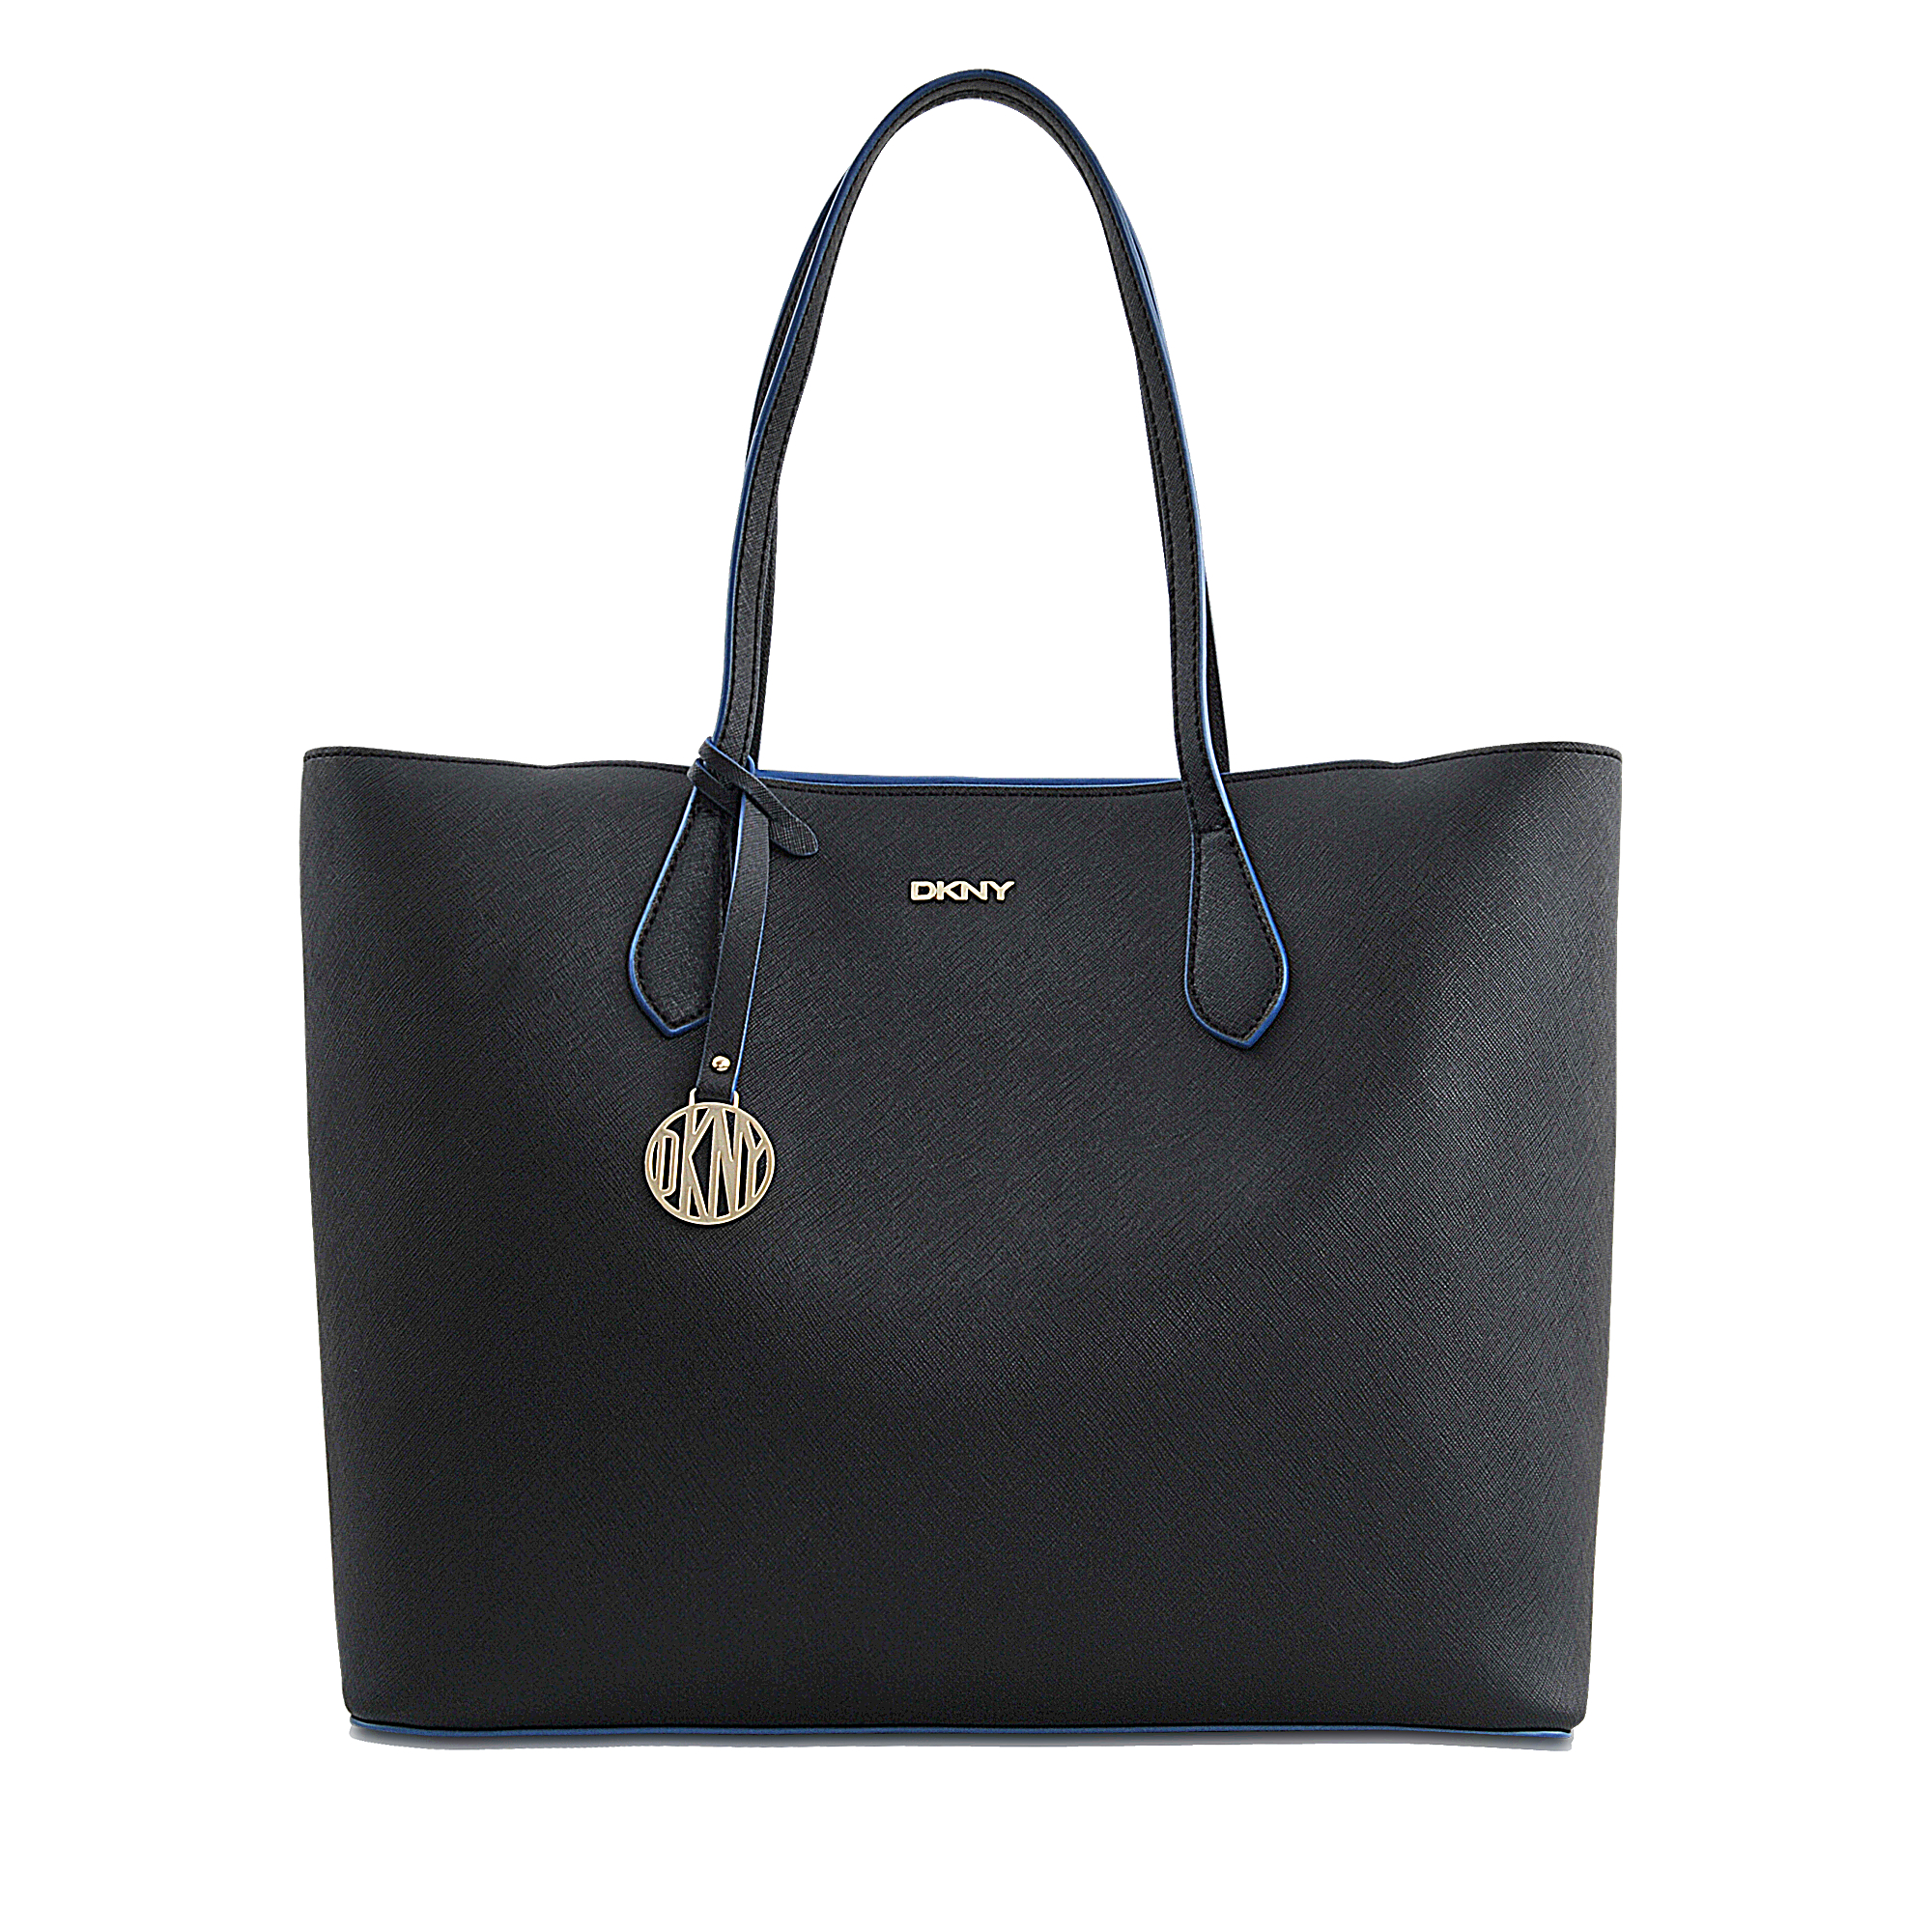 dkny ew shopper bryant park tote in black lyst. Black Bedroom Furniture Sets. Home Design Ideas